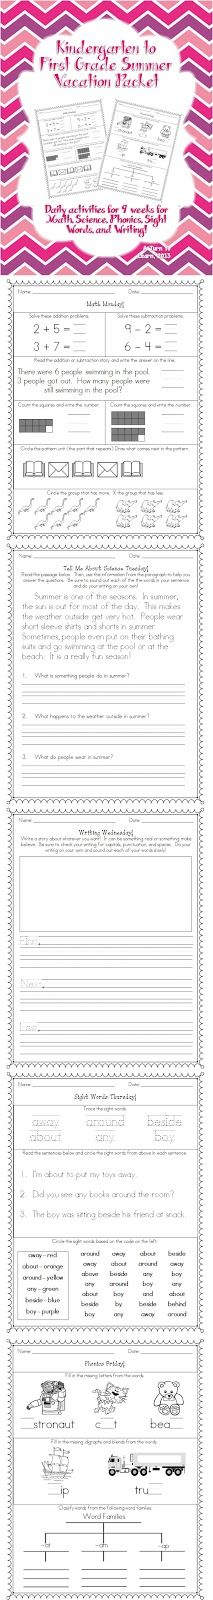 17 Best ideas about Summer Worksheets on Pinterest | Free ...